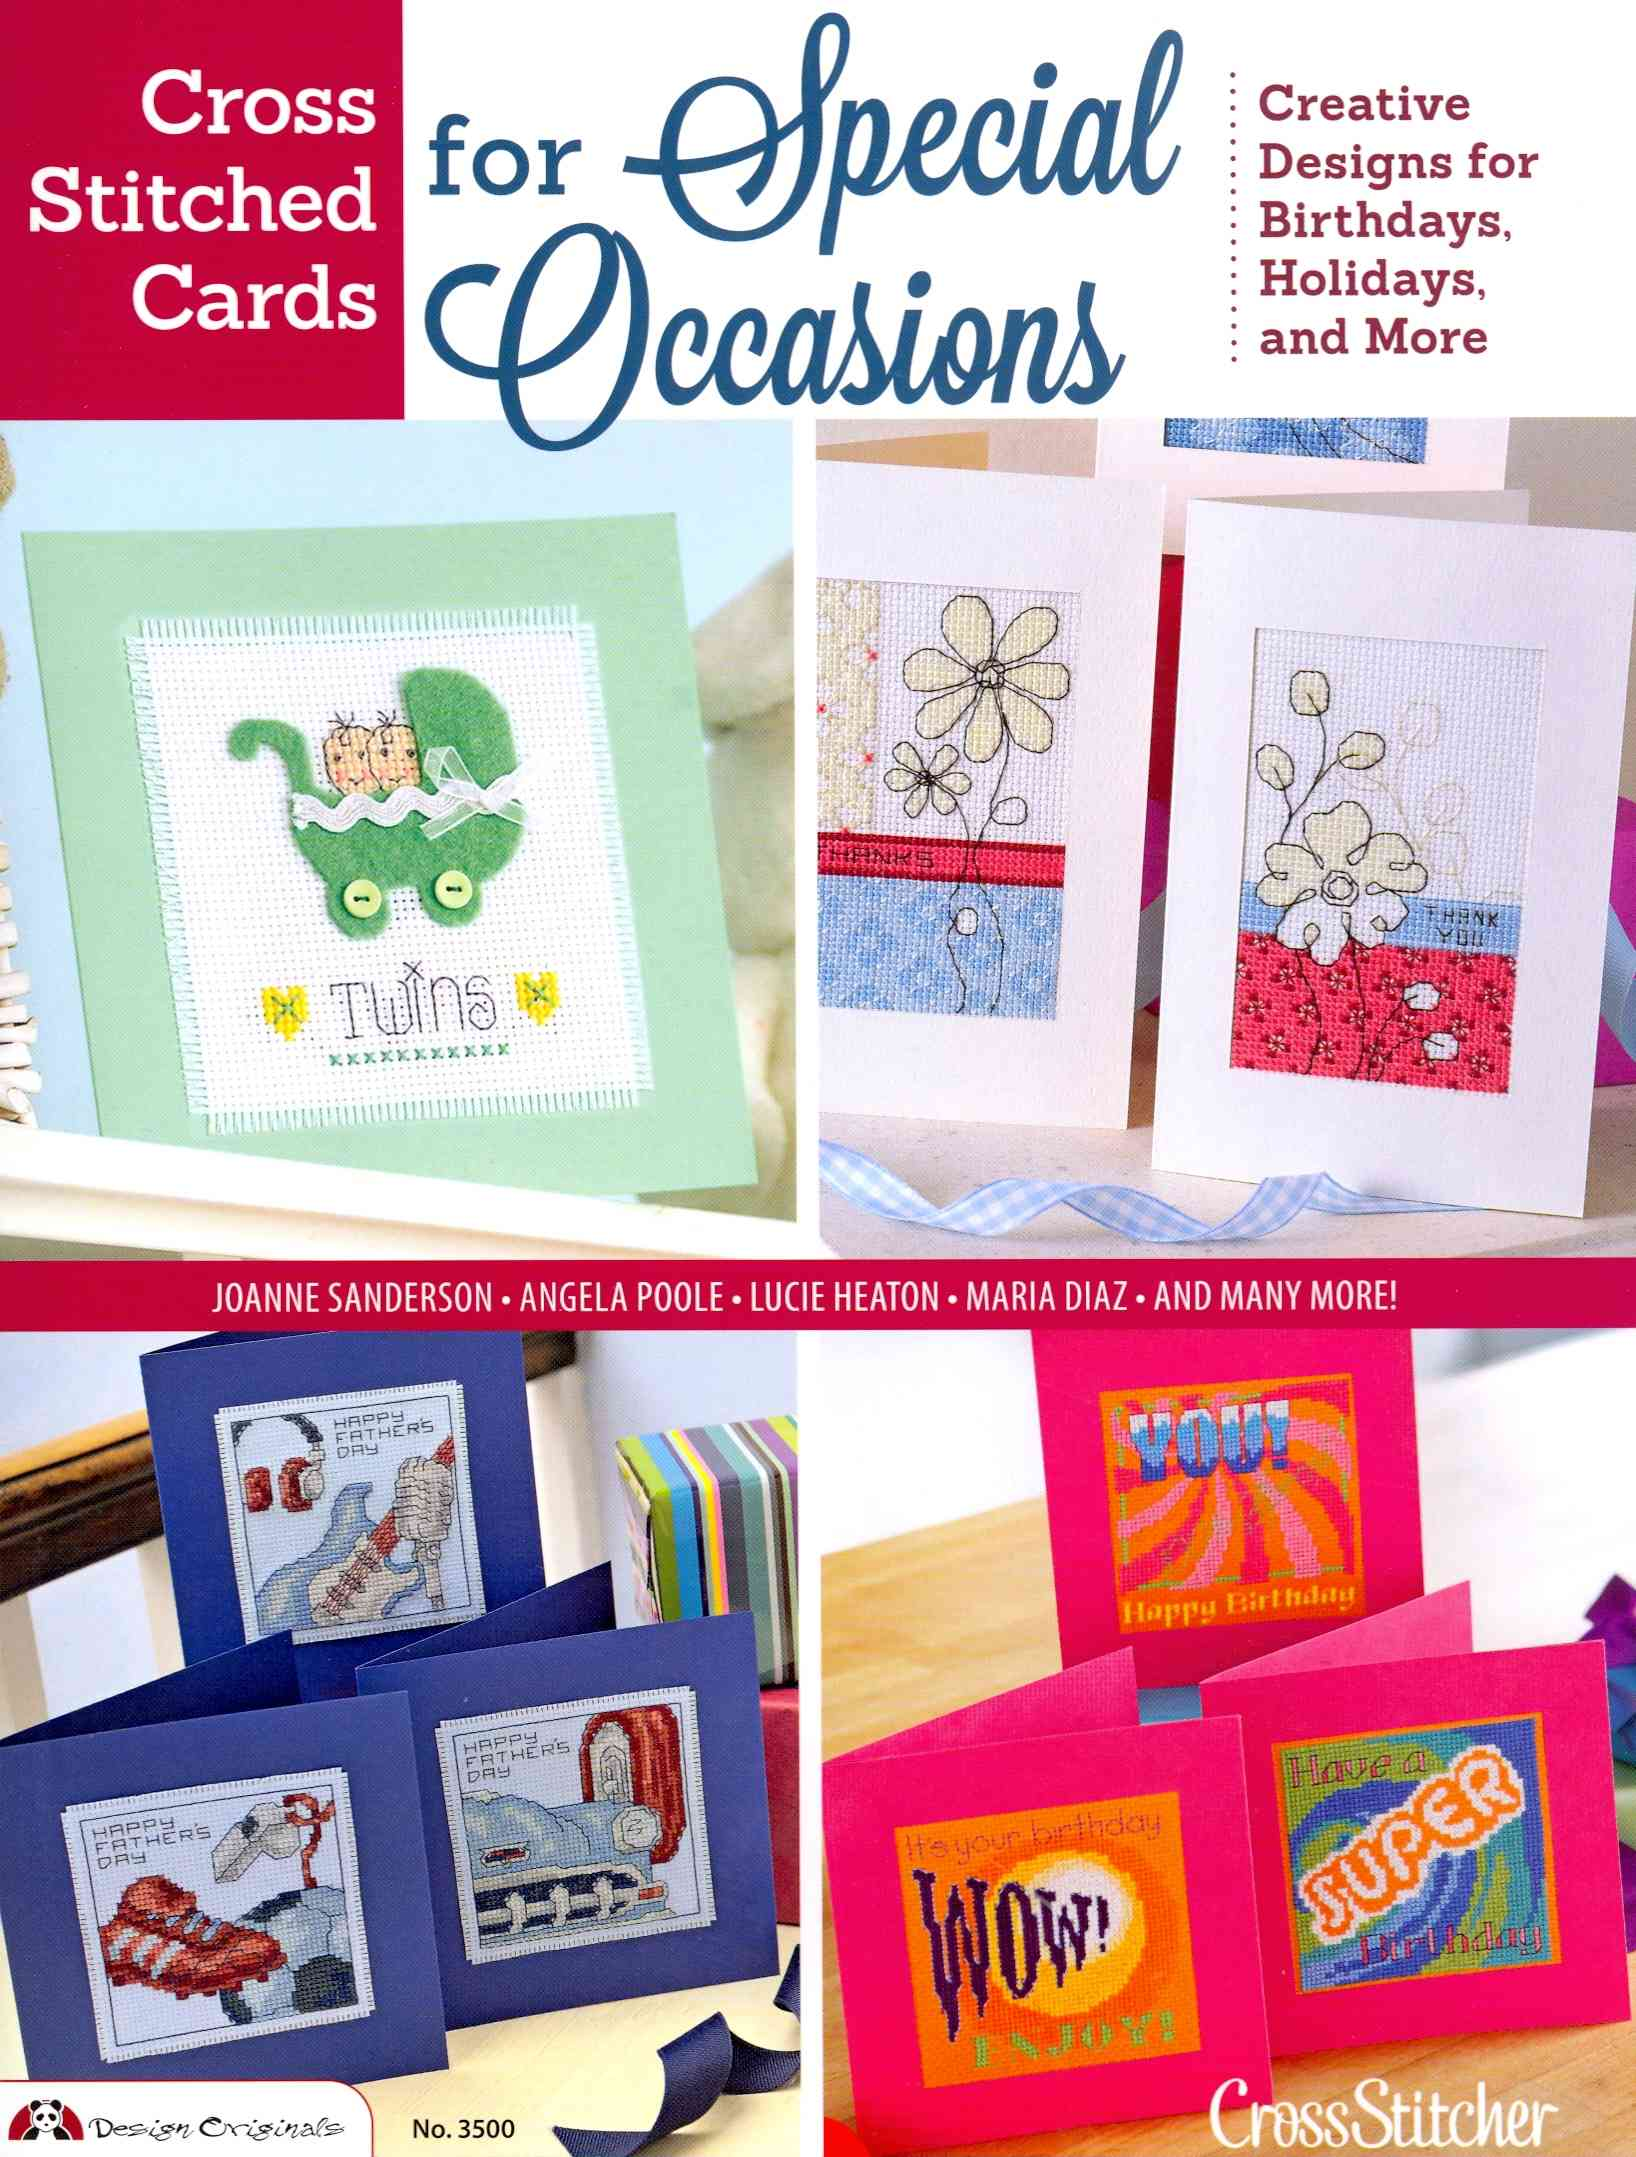 Cross Stitched Cards for Special Occasions By Future Publishing (COR)